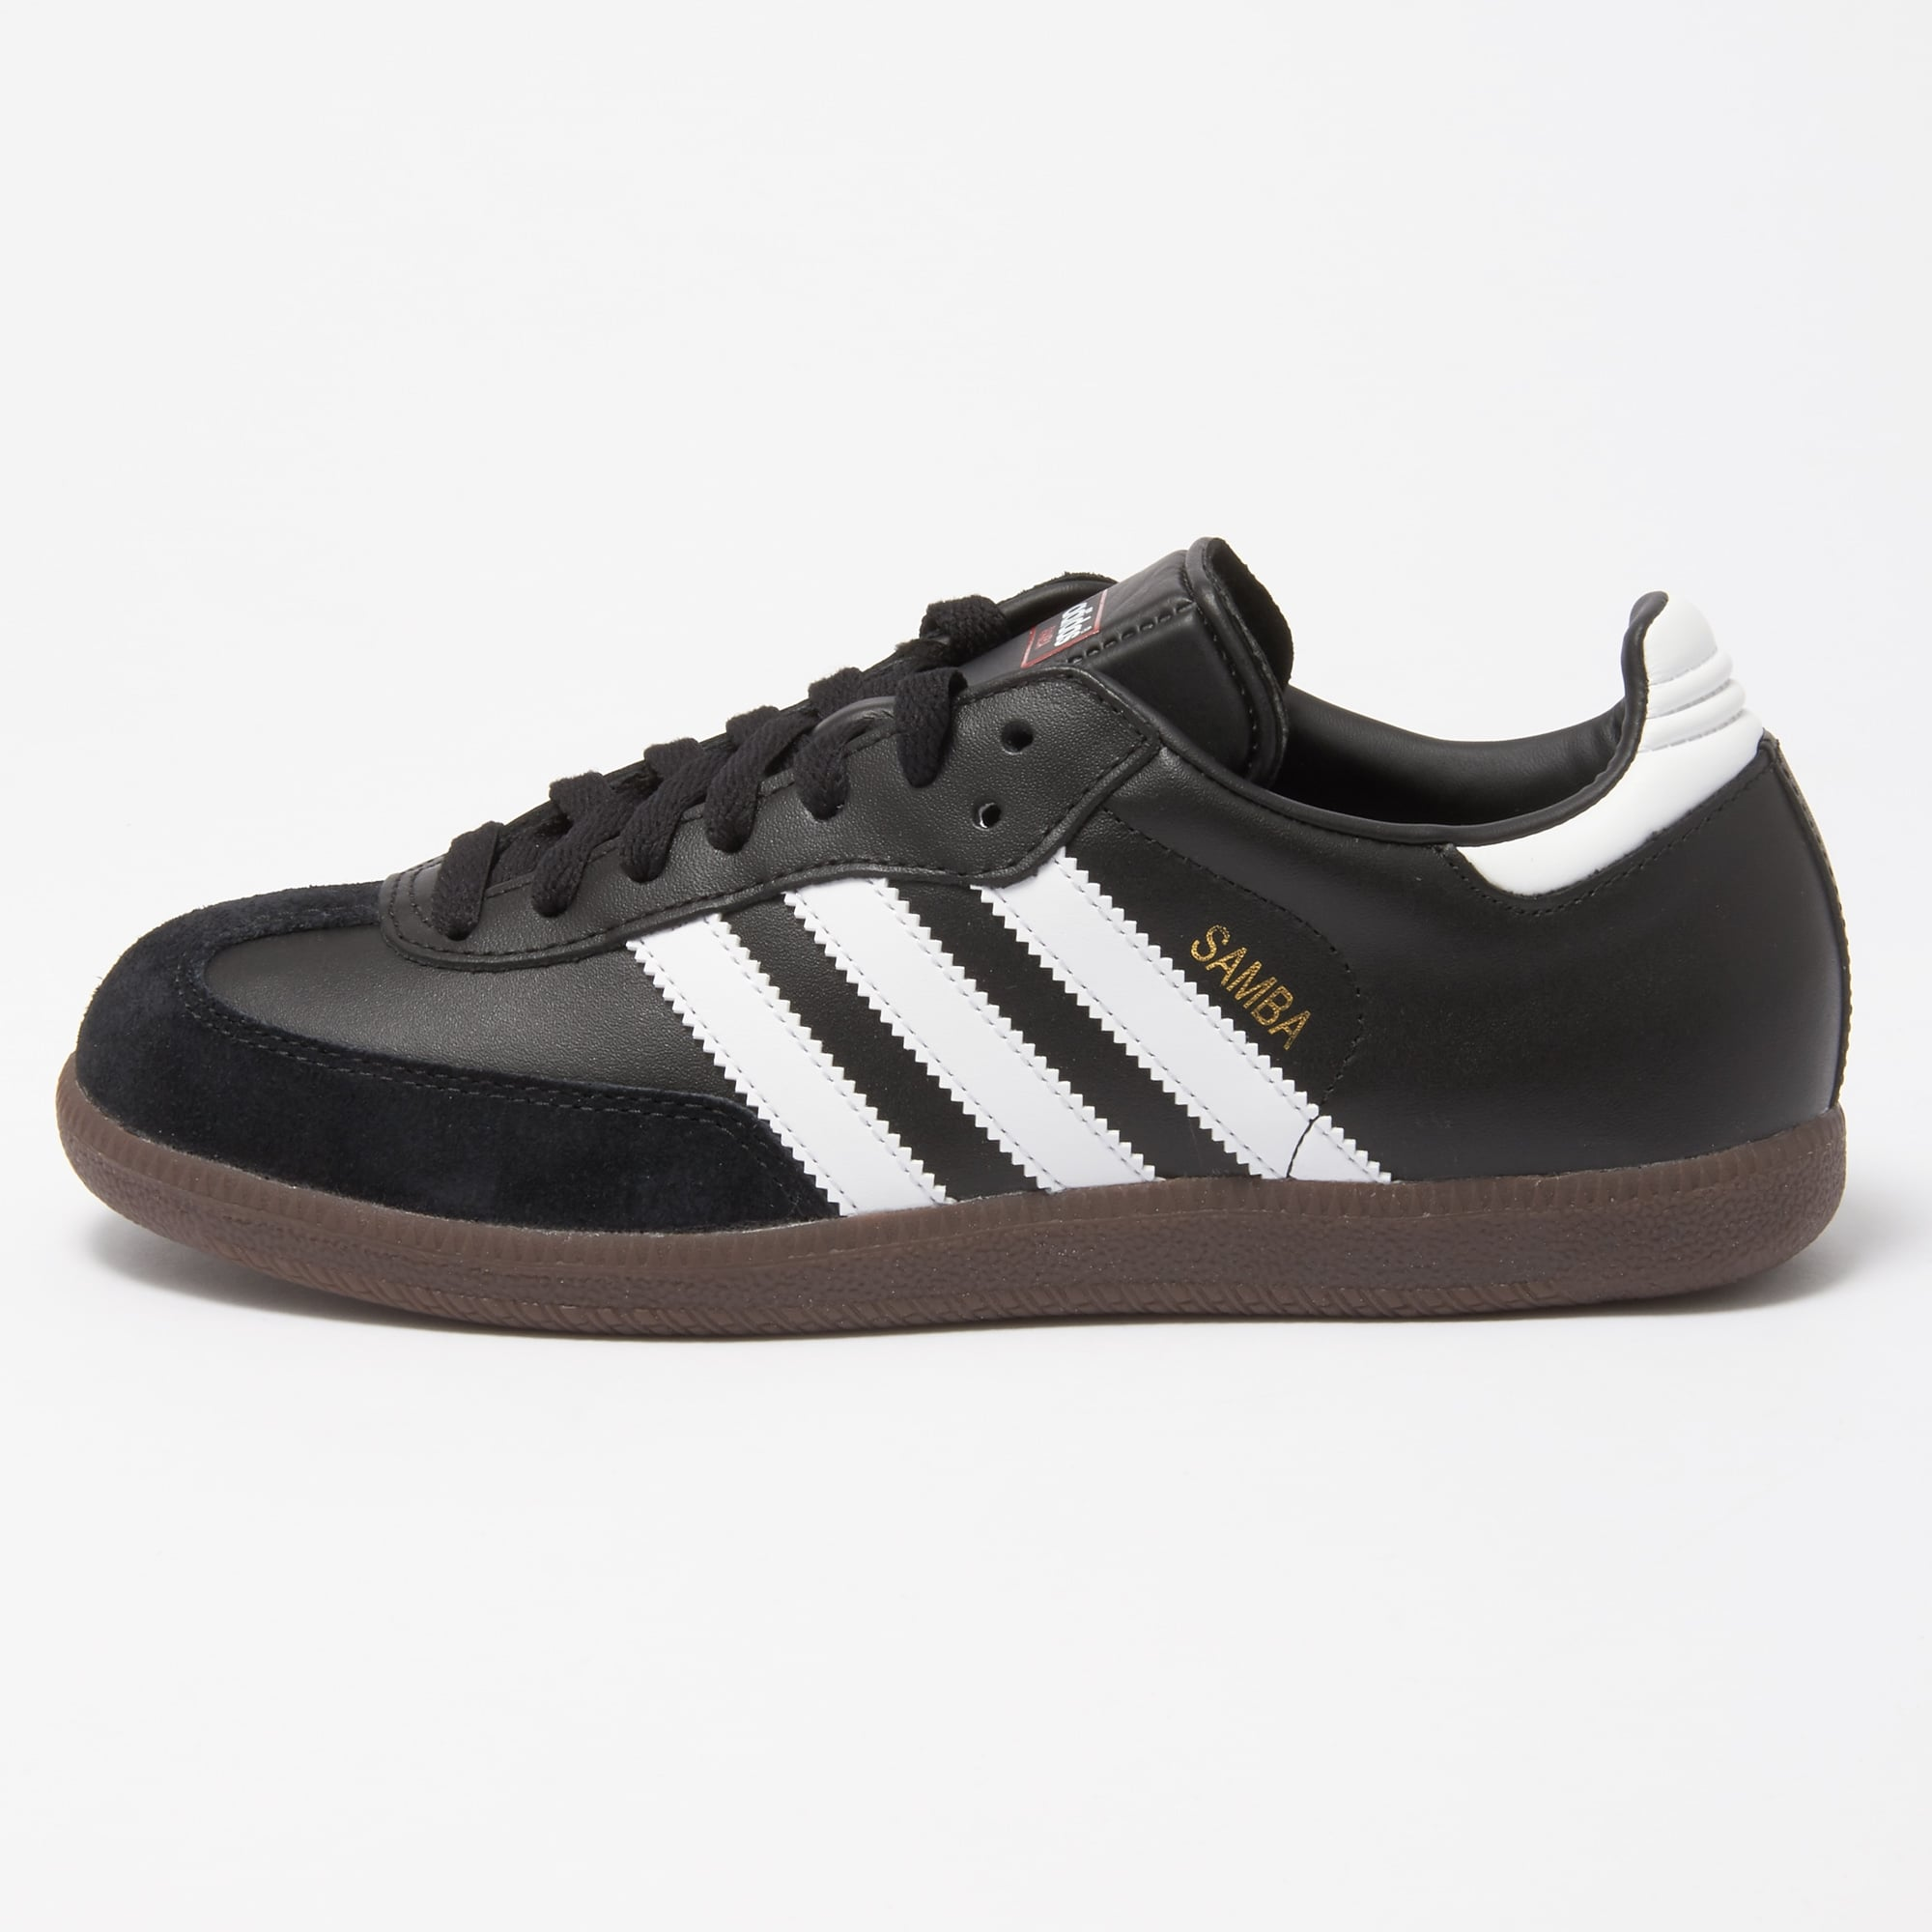 Adidas Leather Shoes   Shop Adidas Shoes For Men · Women ·Kids ... af9065b0c5